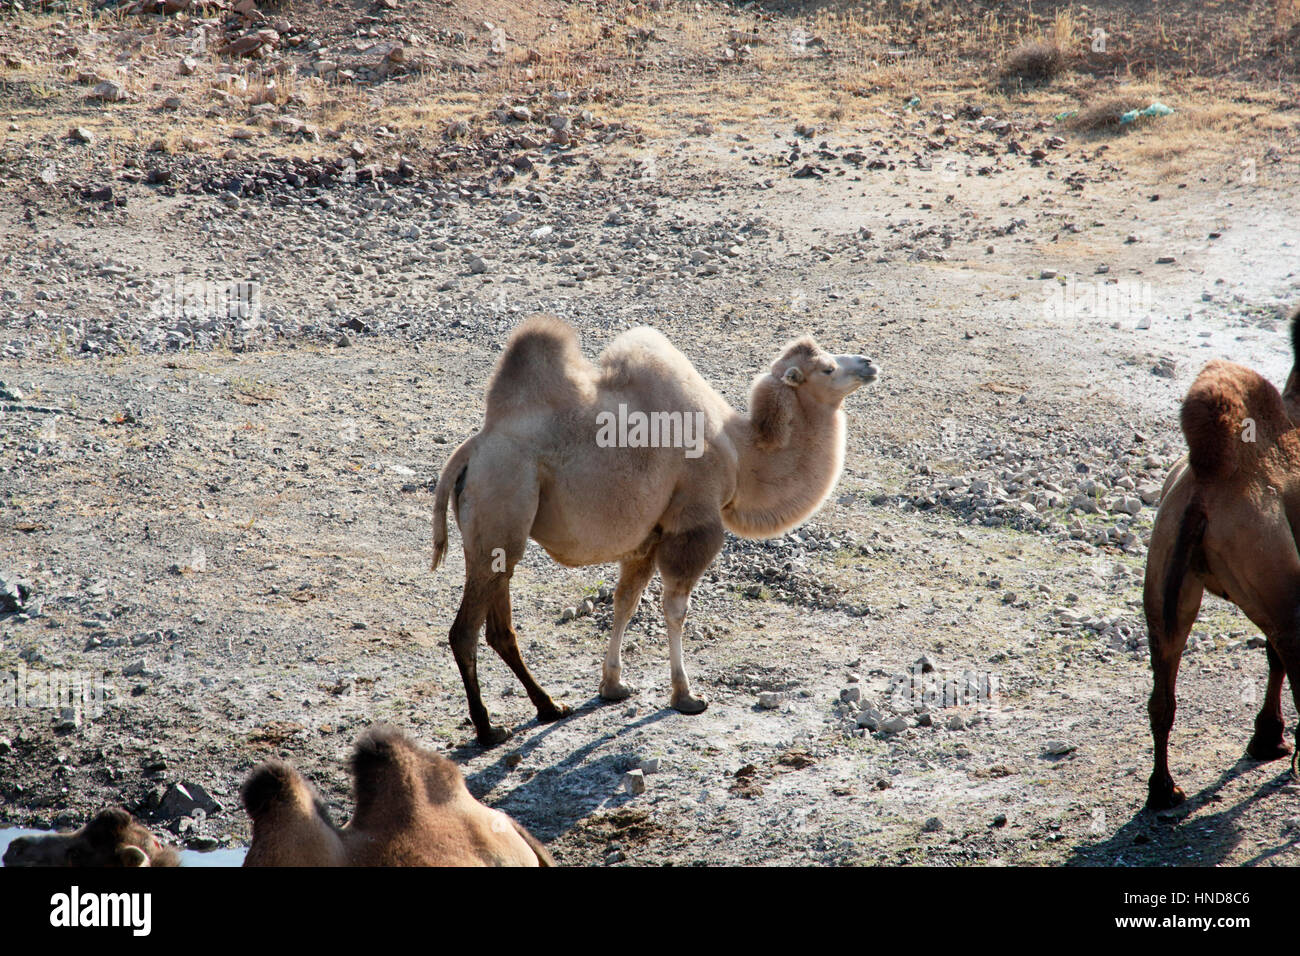 Camels - Stock Image